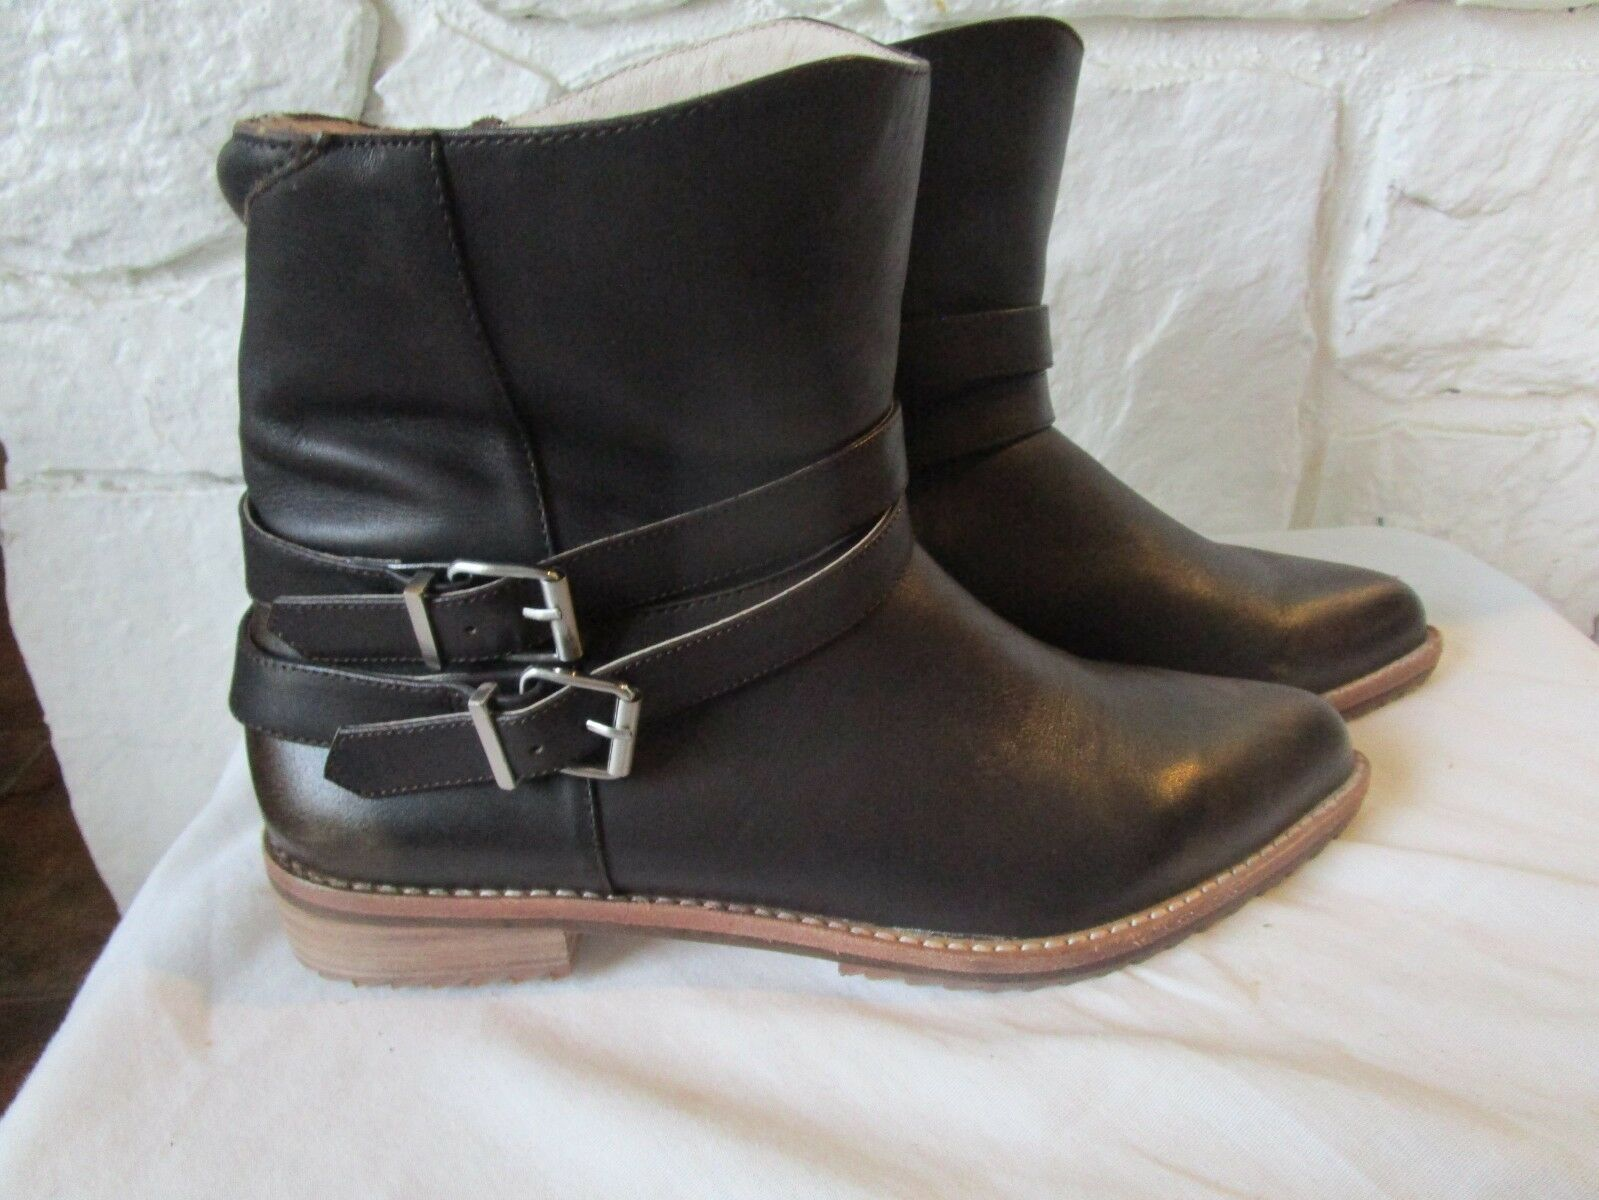 MATT BERNSON SHOES VOX BUCKLE BOOTIES ANKLE BOOTS Brown LEATHER 7.5 MOTO NWOB